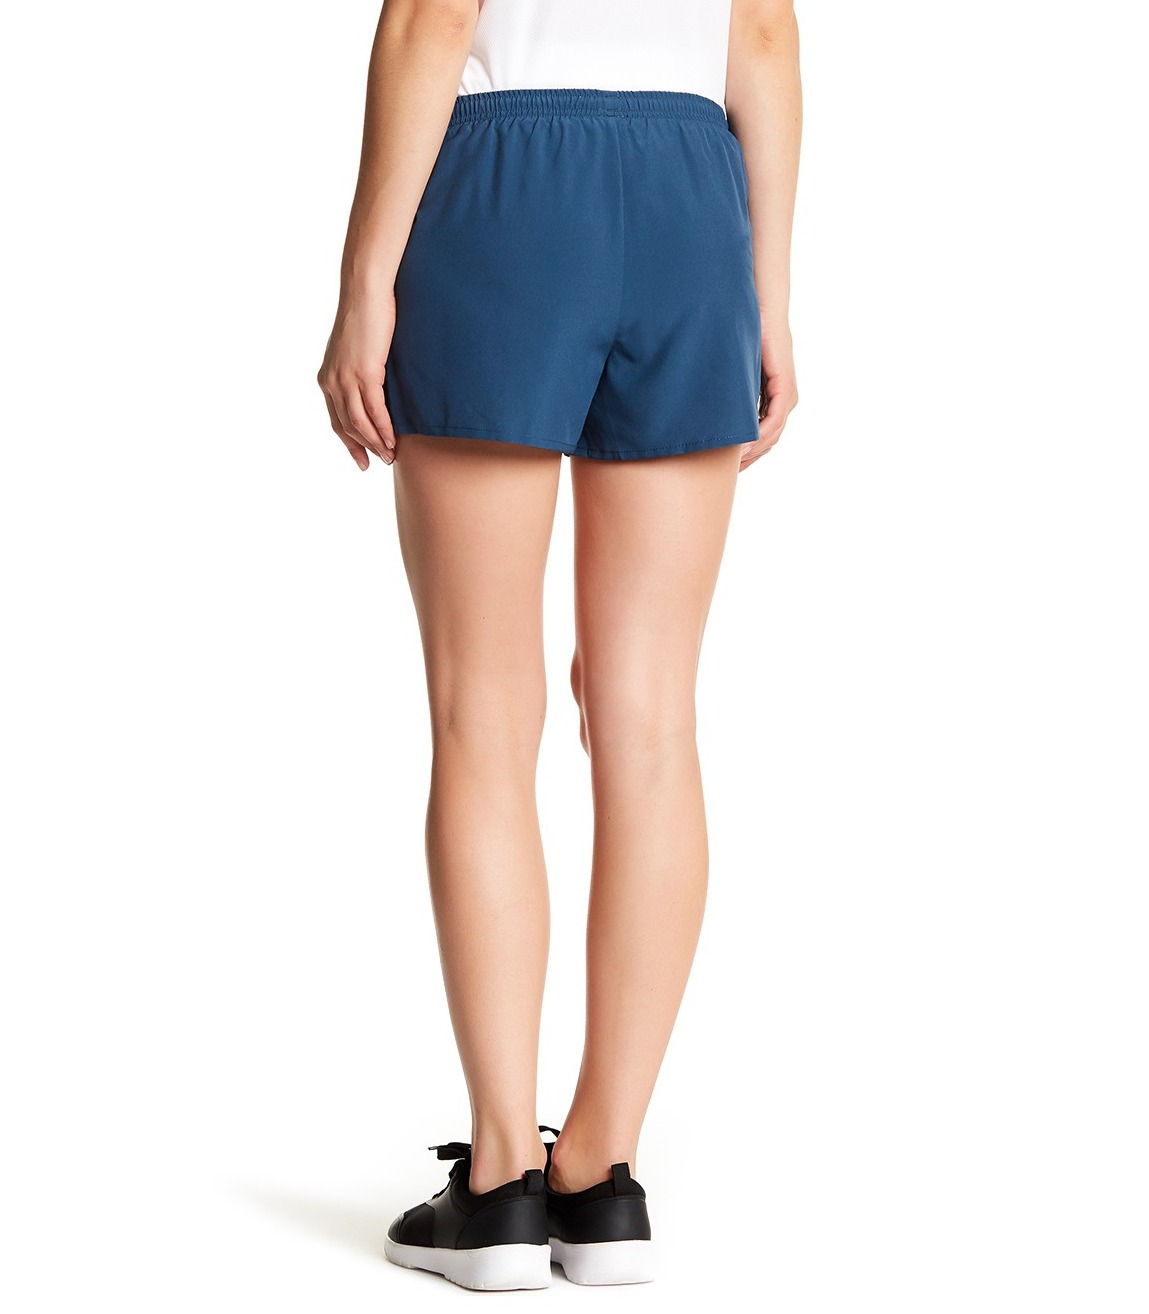 Asics-NEW-Solid-Women-039-s-Performance-Woven-Athletic-Shorts-30 thumbnail 3